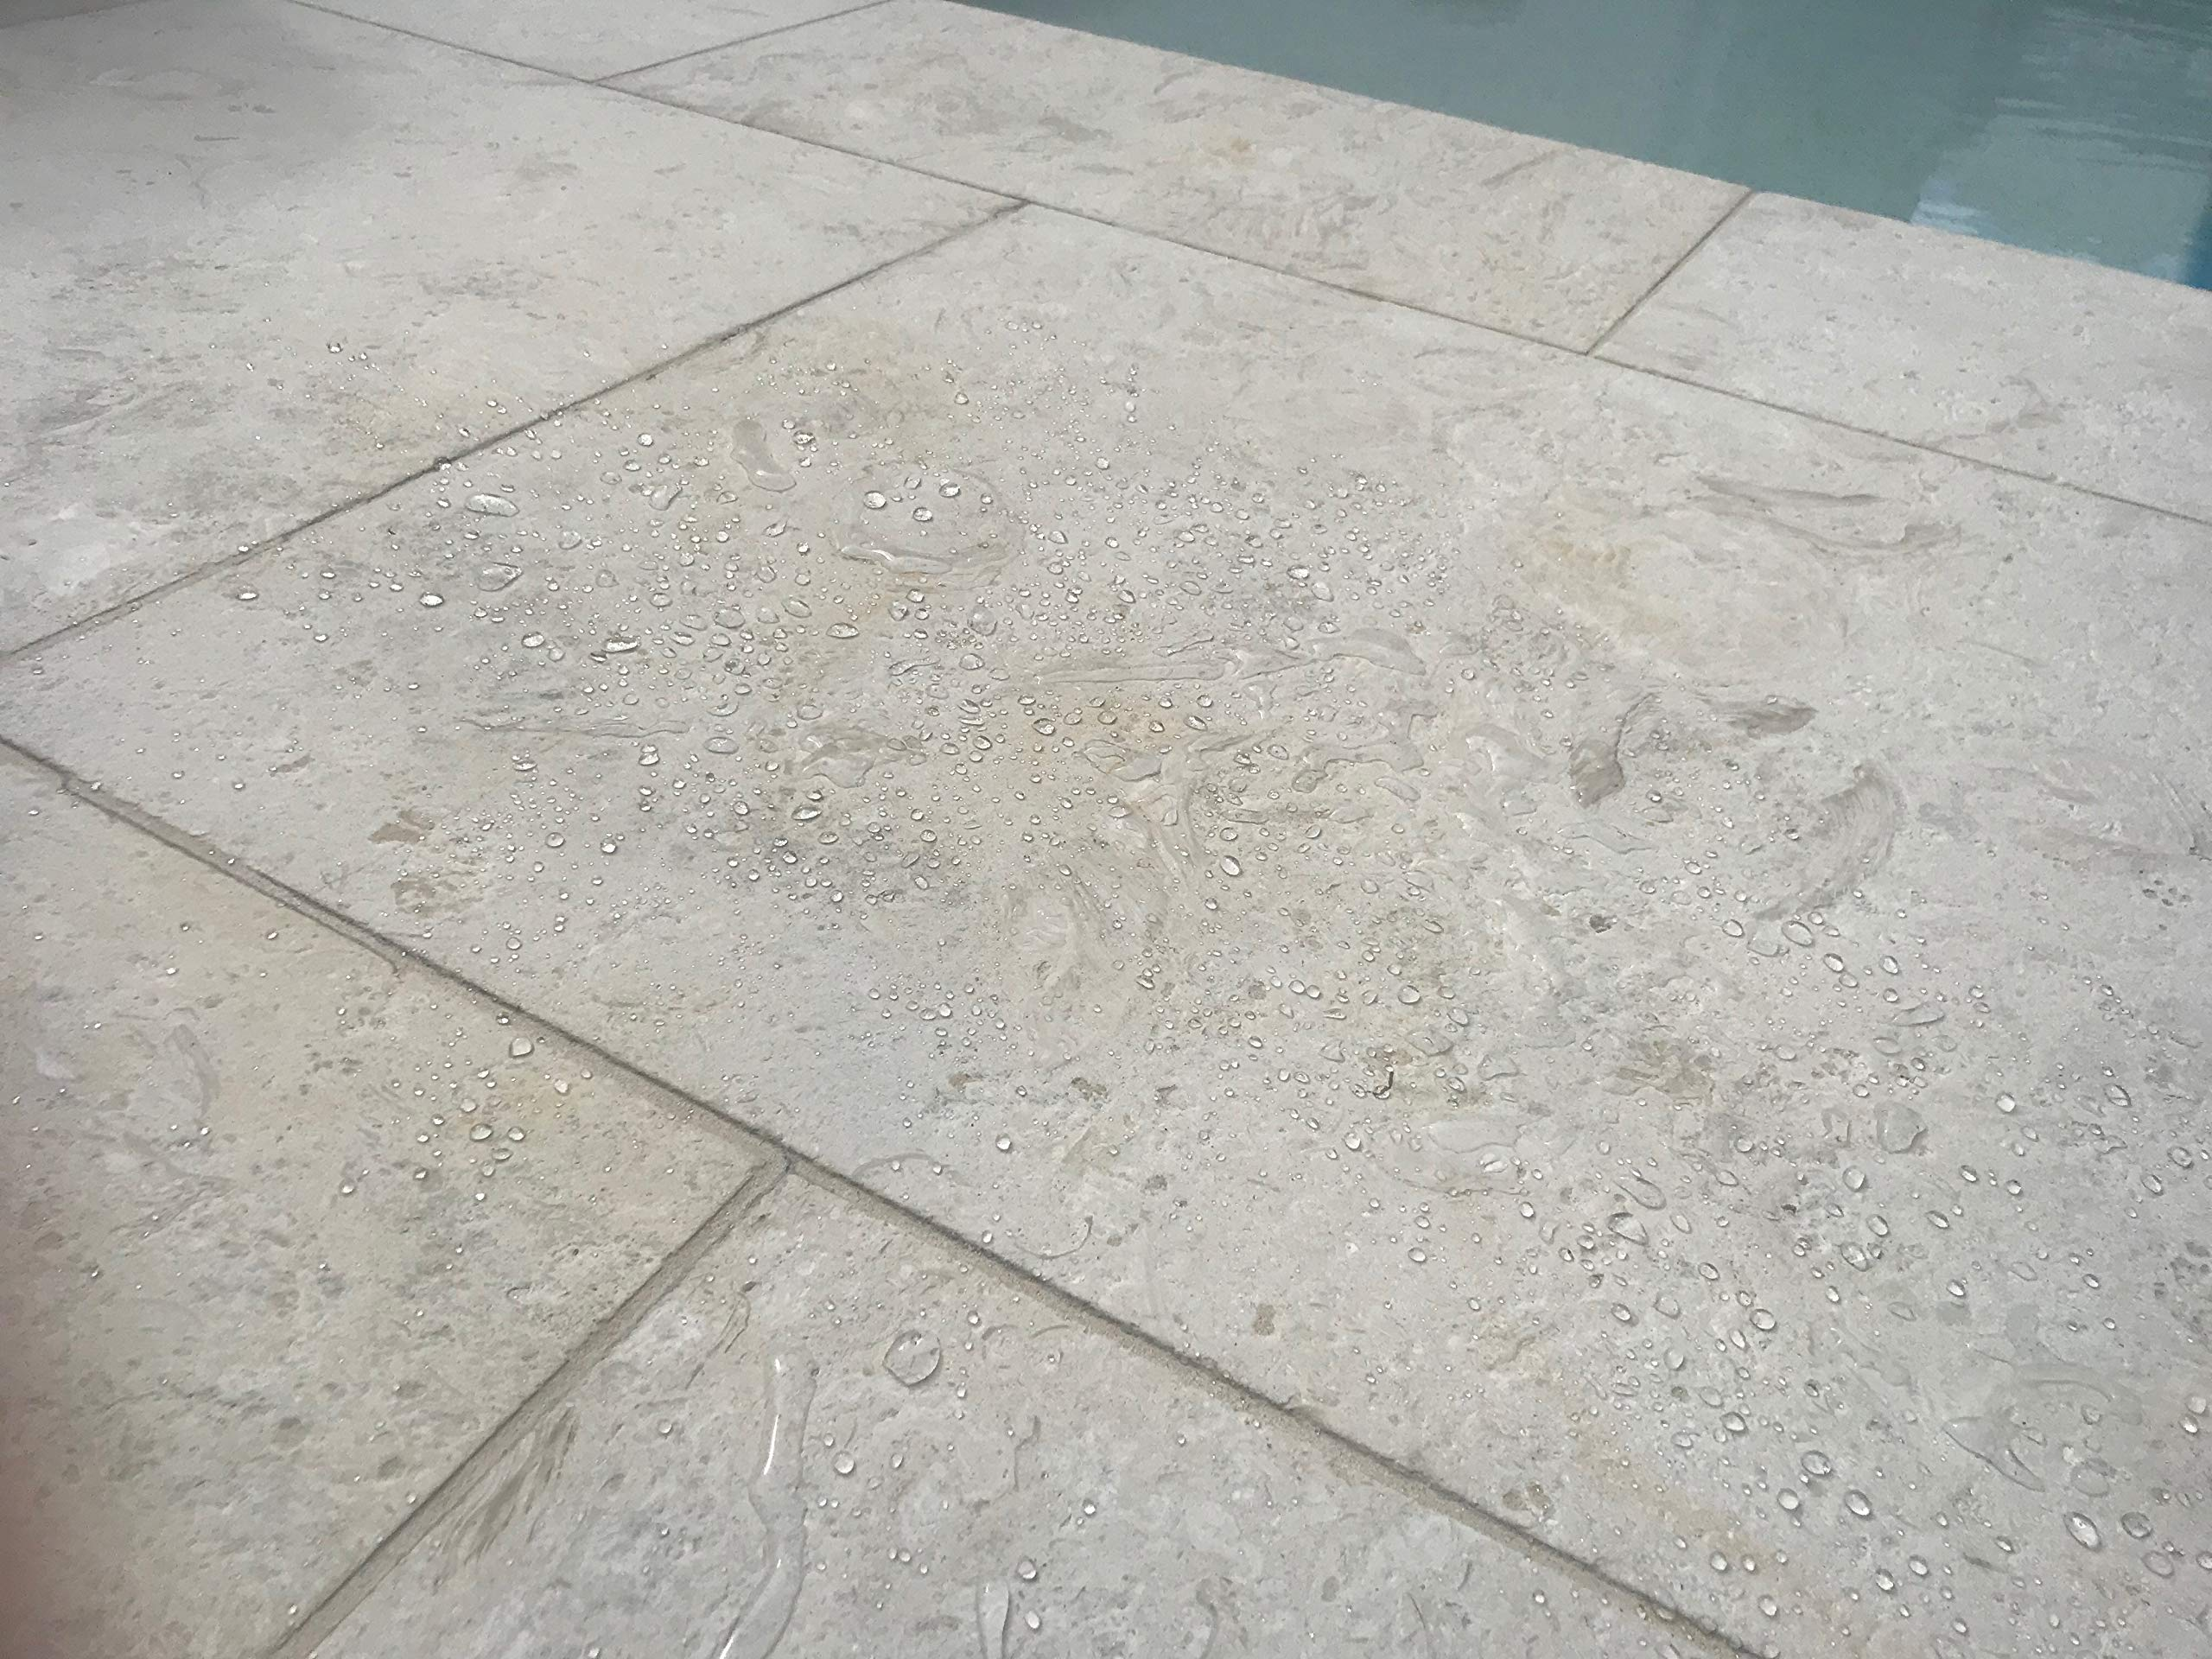 Ultra Dry 70 - Stone Sealer for Travertine Limestone Marble and Granite - Natural Look (Gallon) by Stella Sealants (Image #3)